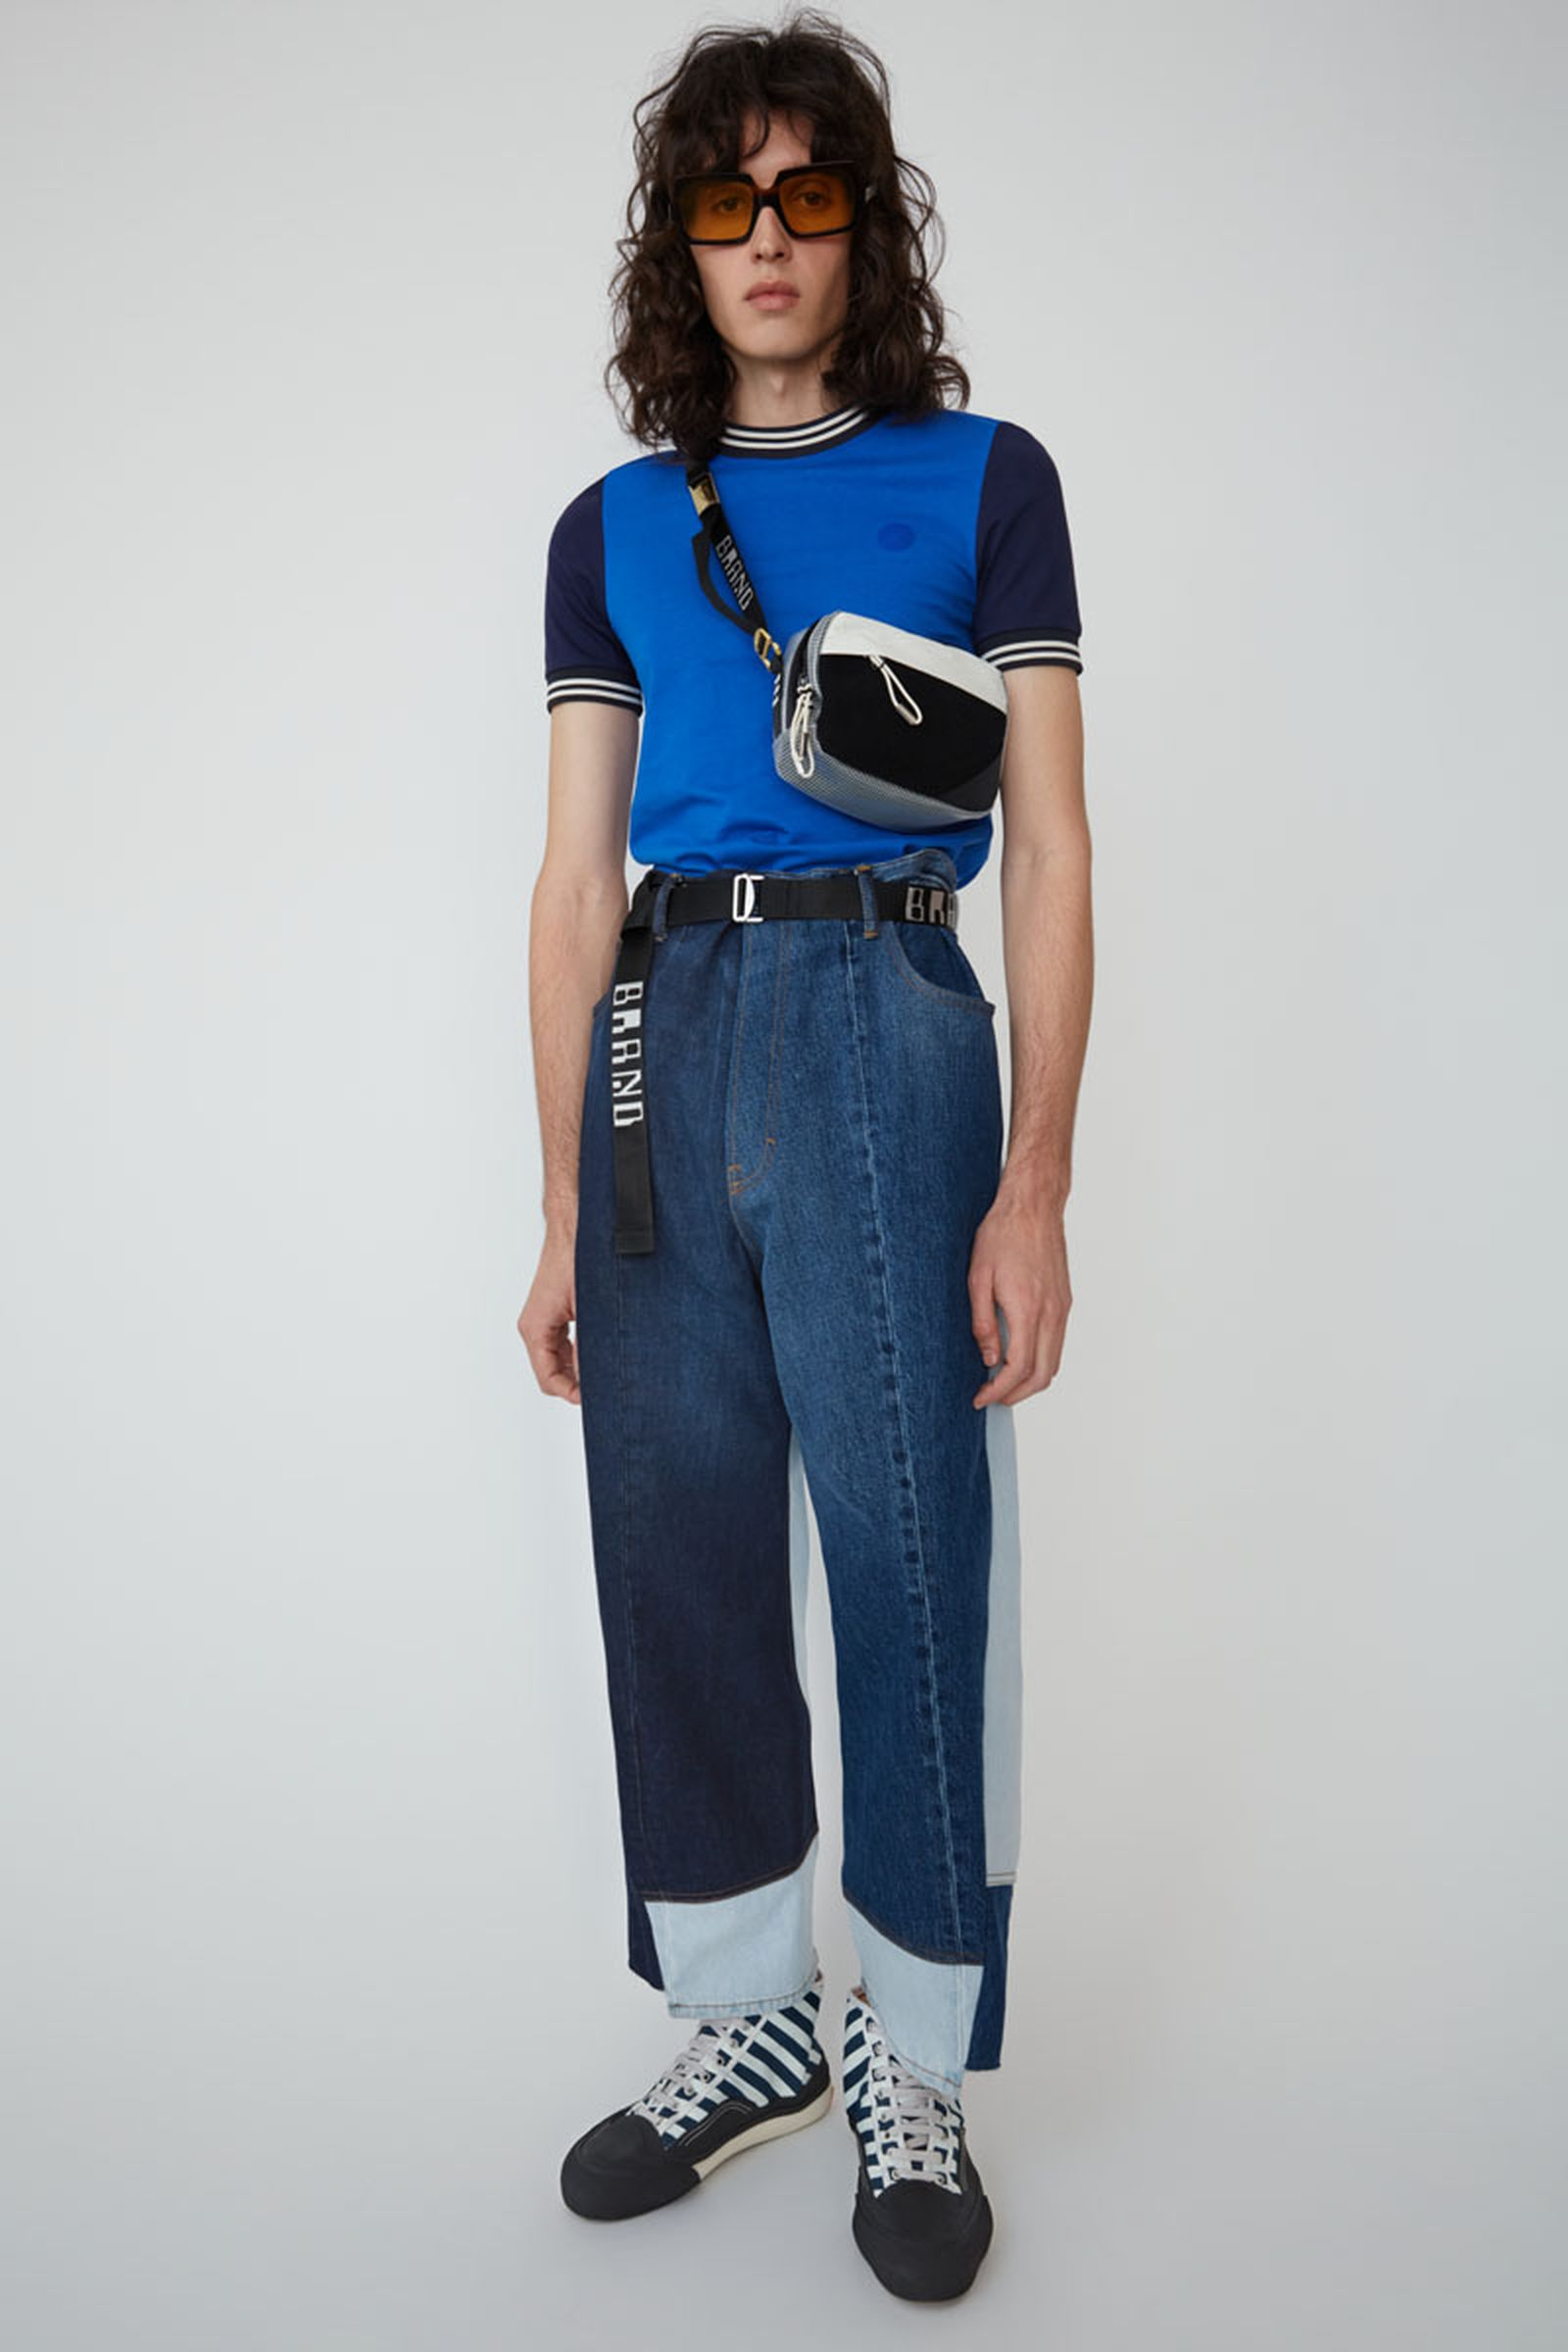 3acne studios ss19 denim collection